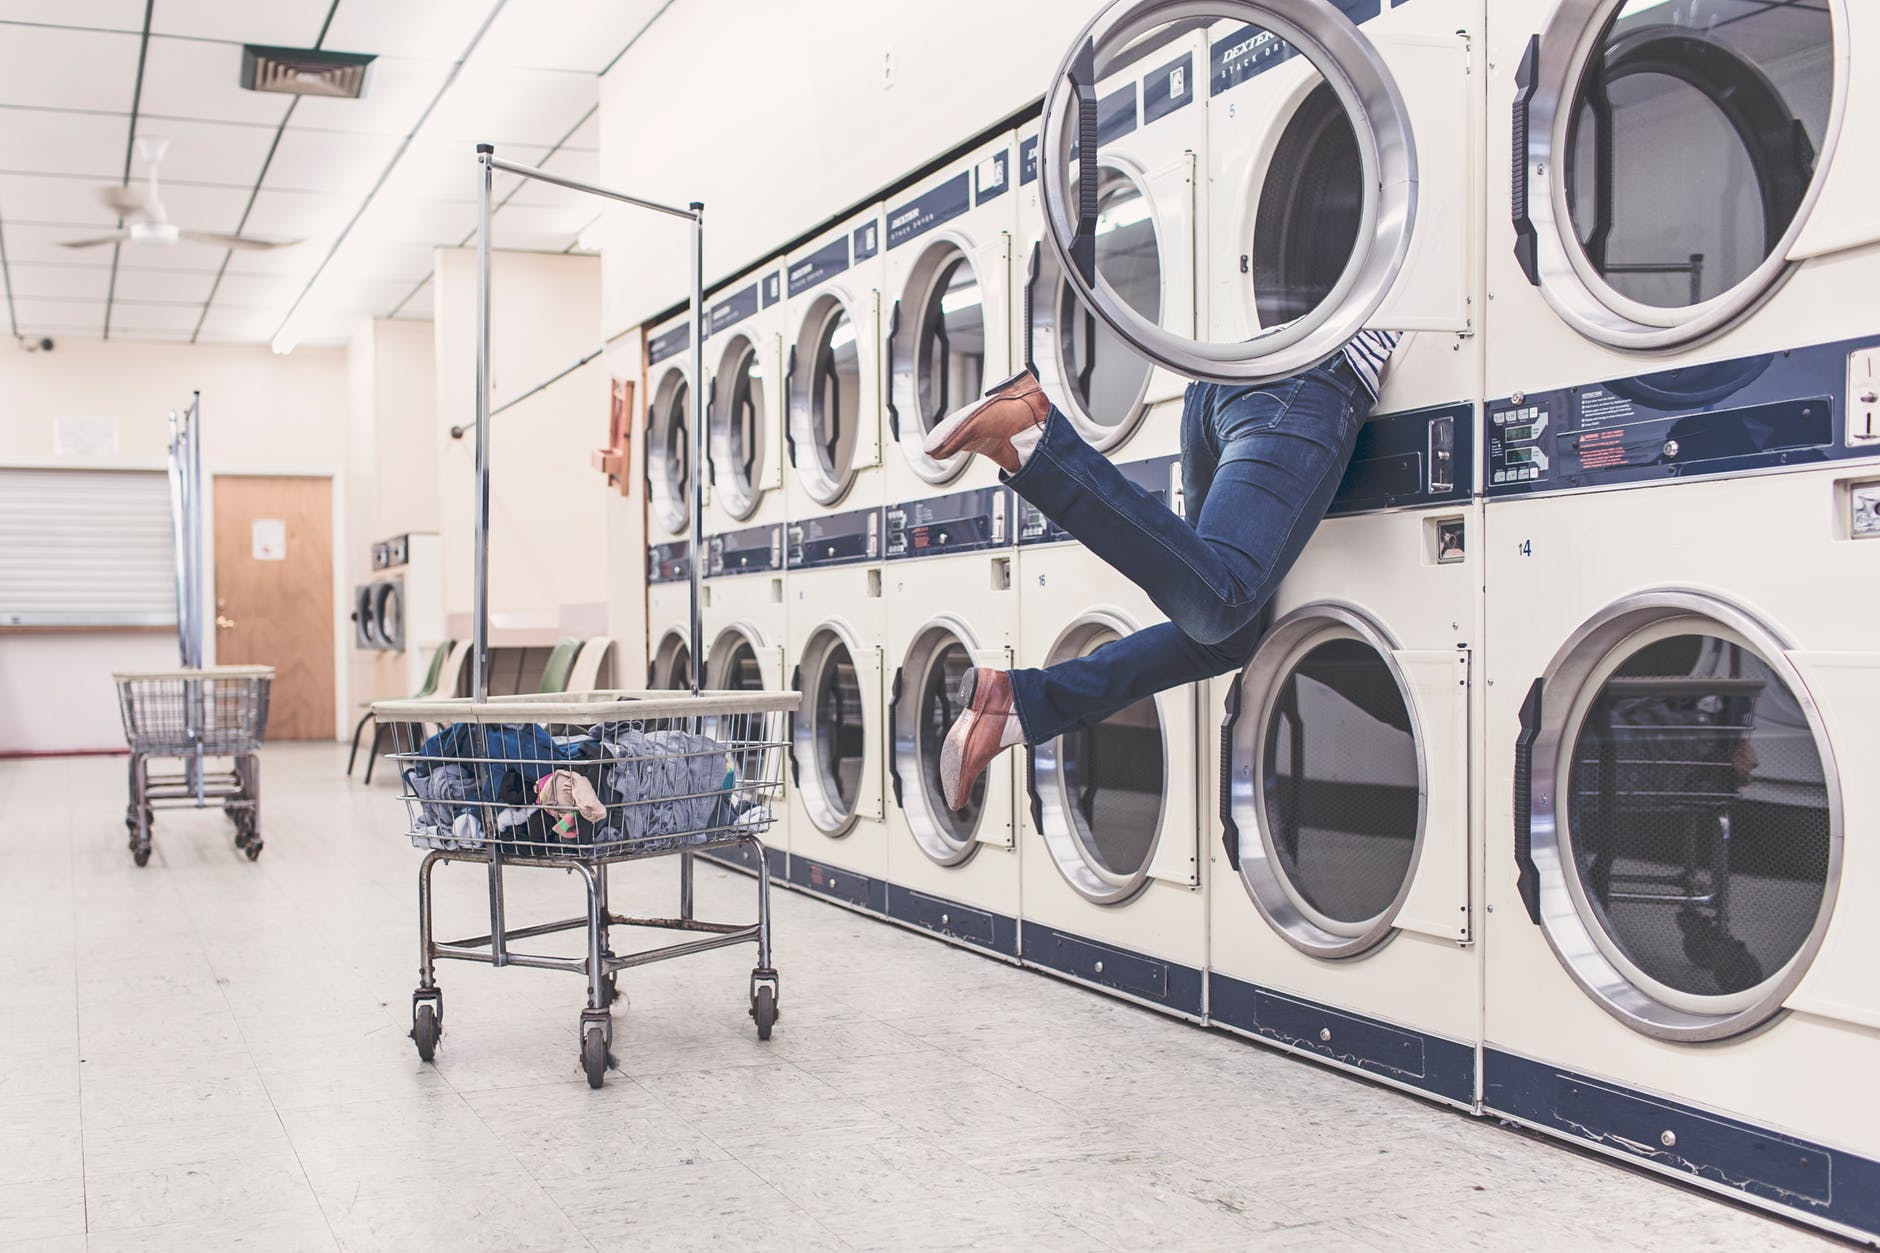 person searching for laundry in laundry room